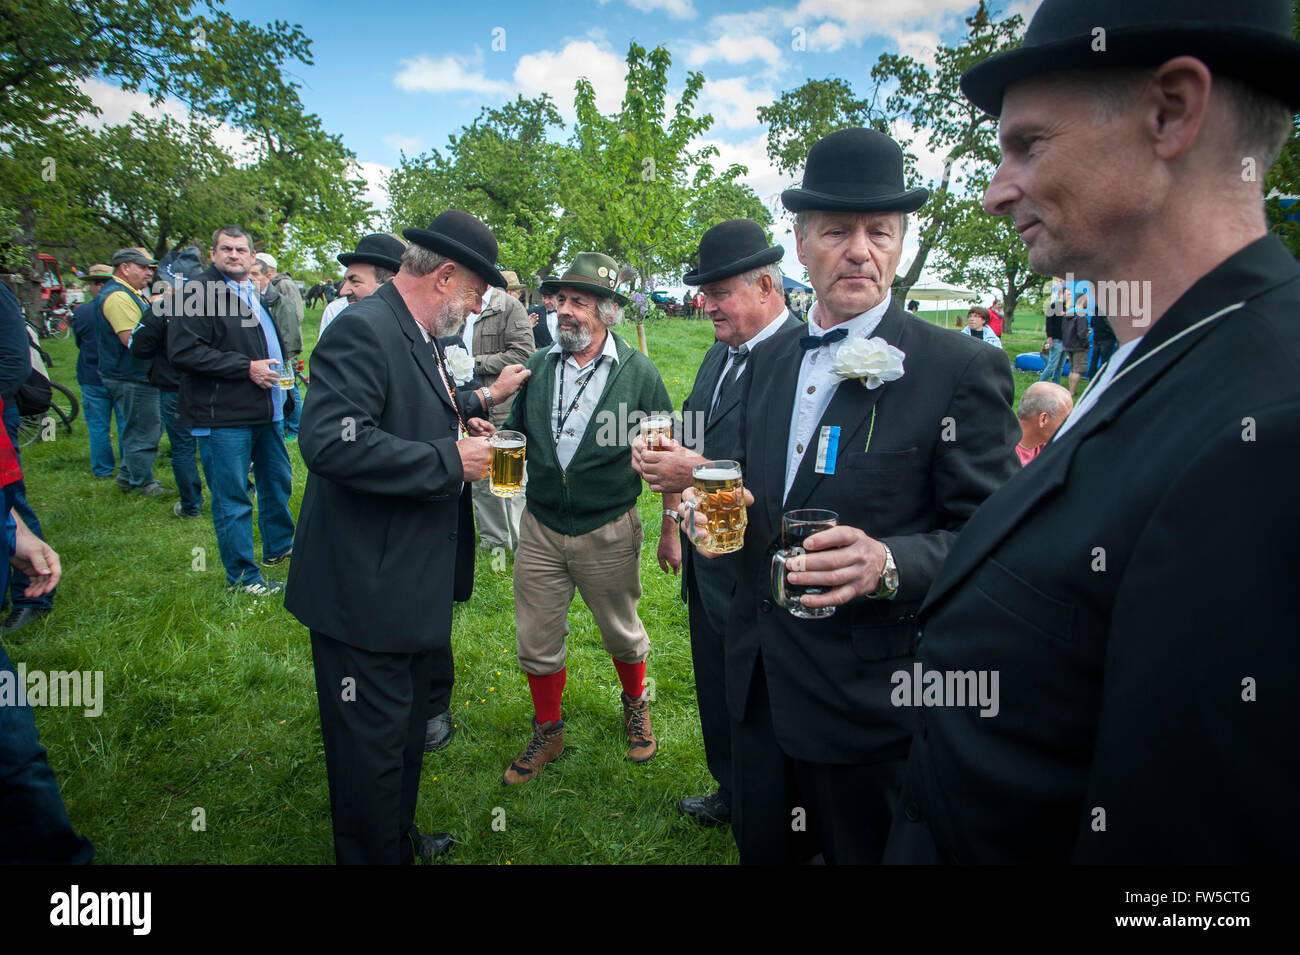 Saxony-Anhalt men celebrating 'Manner Tag' or Fathers Day at the Petersberg near Halle, Germany. - Stock Image